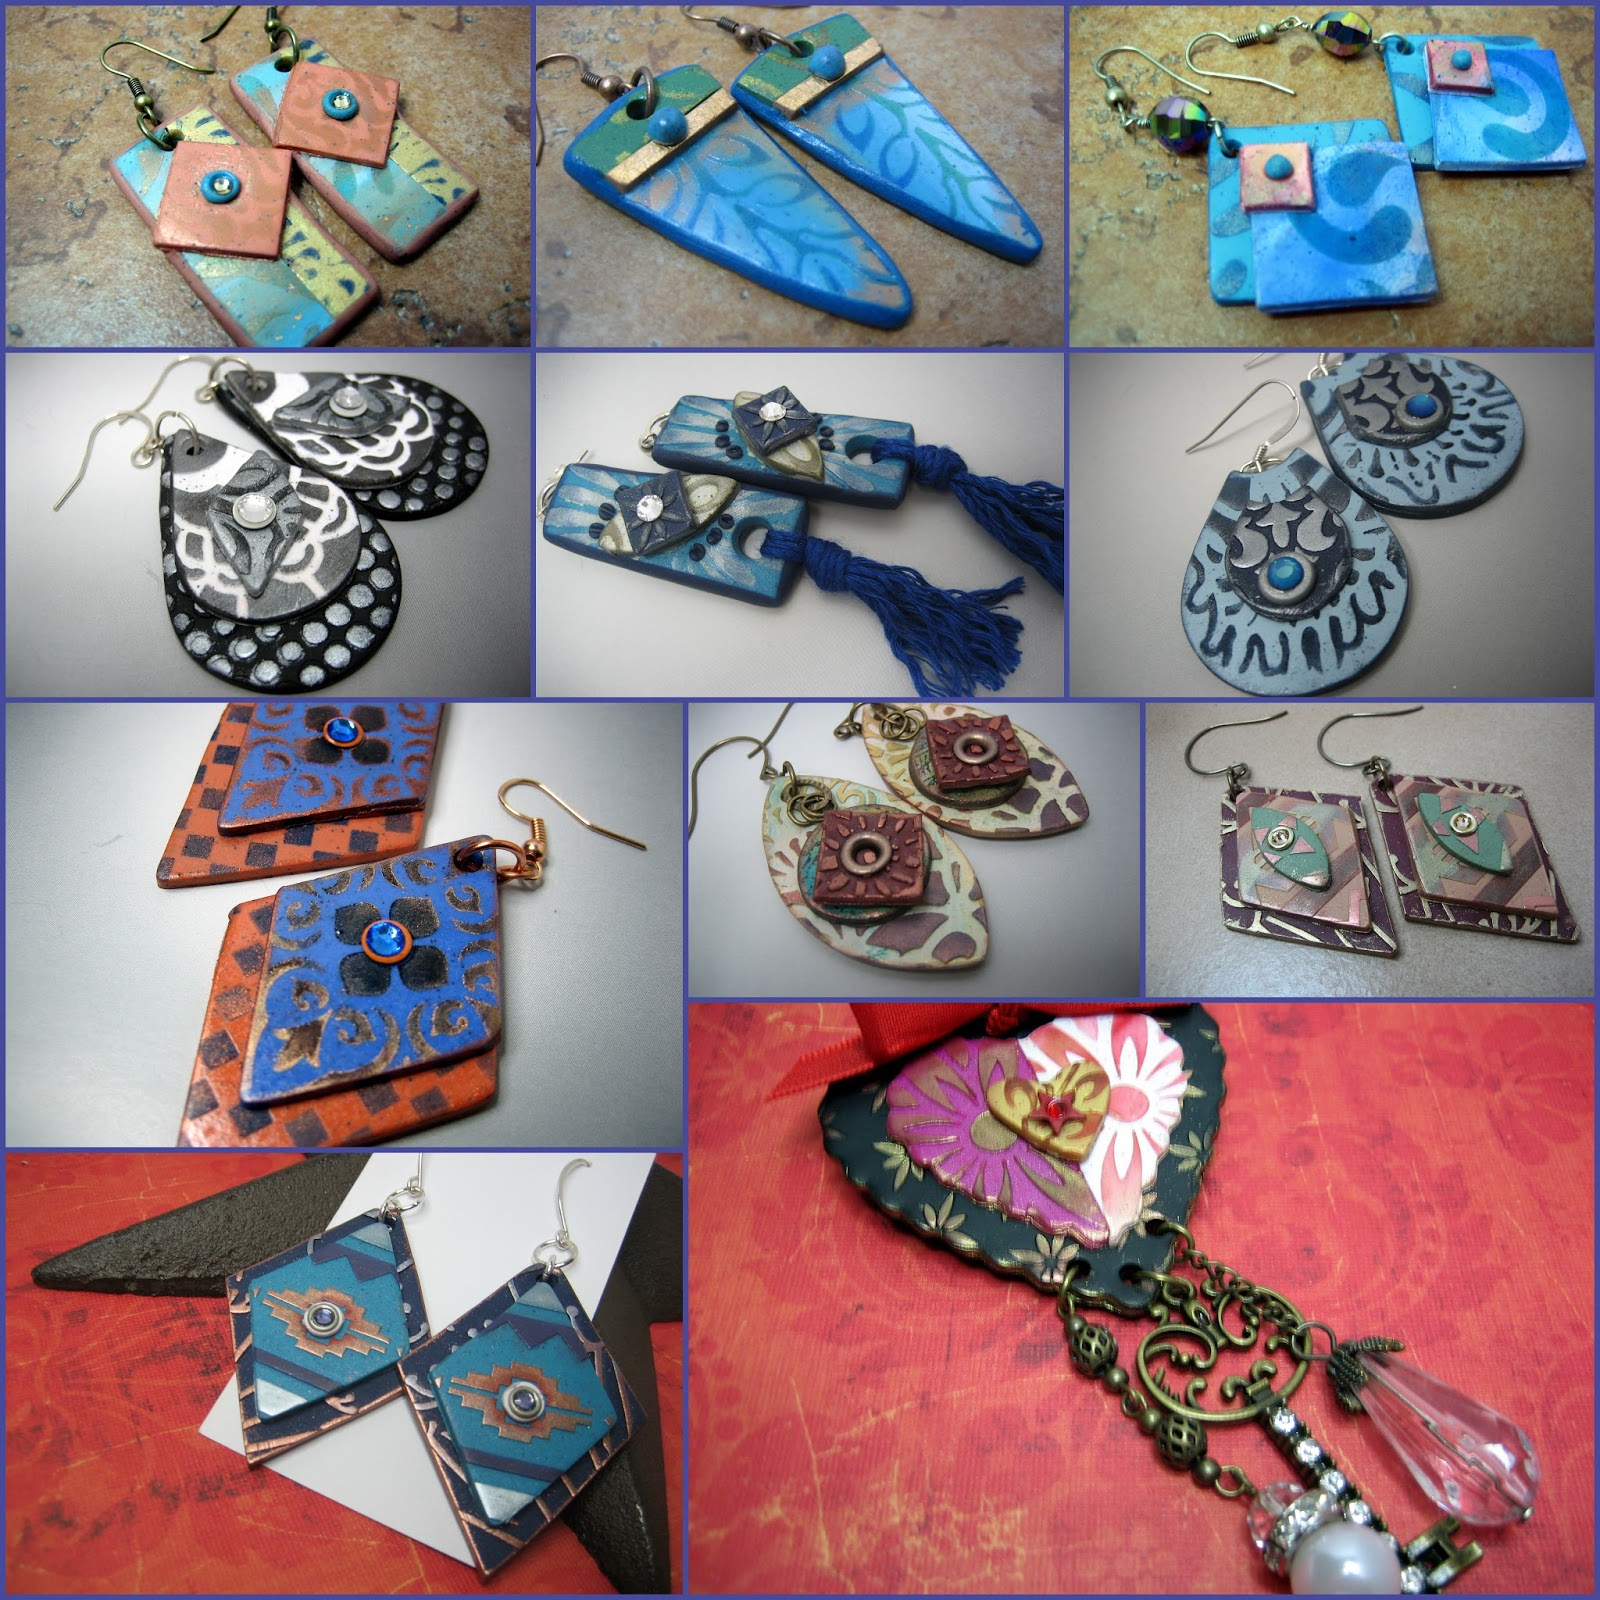 polymer clay jewelry projects Free polymer clay tutorial, free polymer clay tutorials, polymer clay, fimo, premo, sculpey, cernit, mixed media, jewelry making, polymere, bijoux.